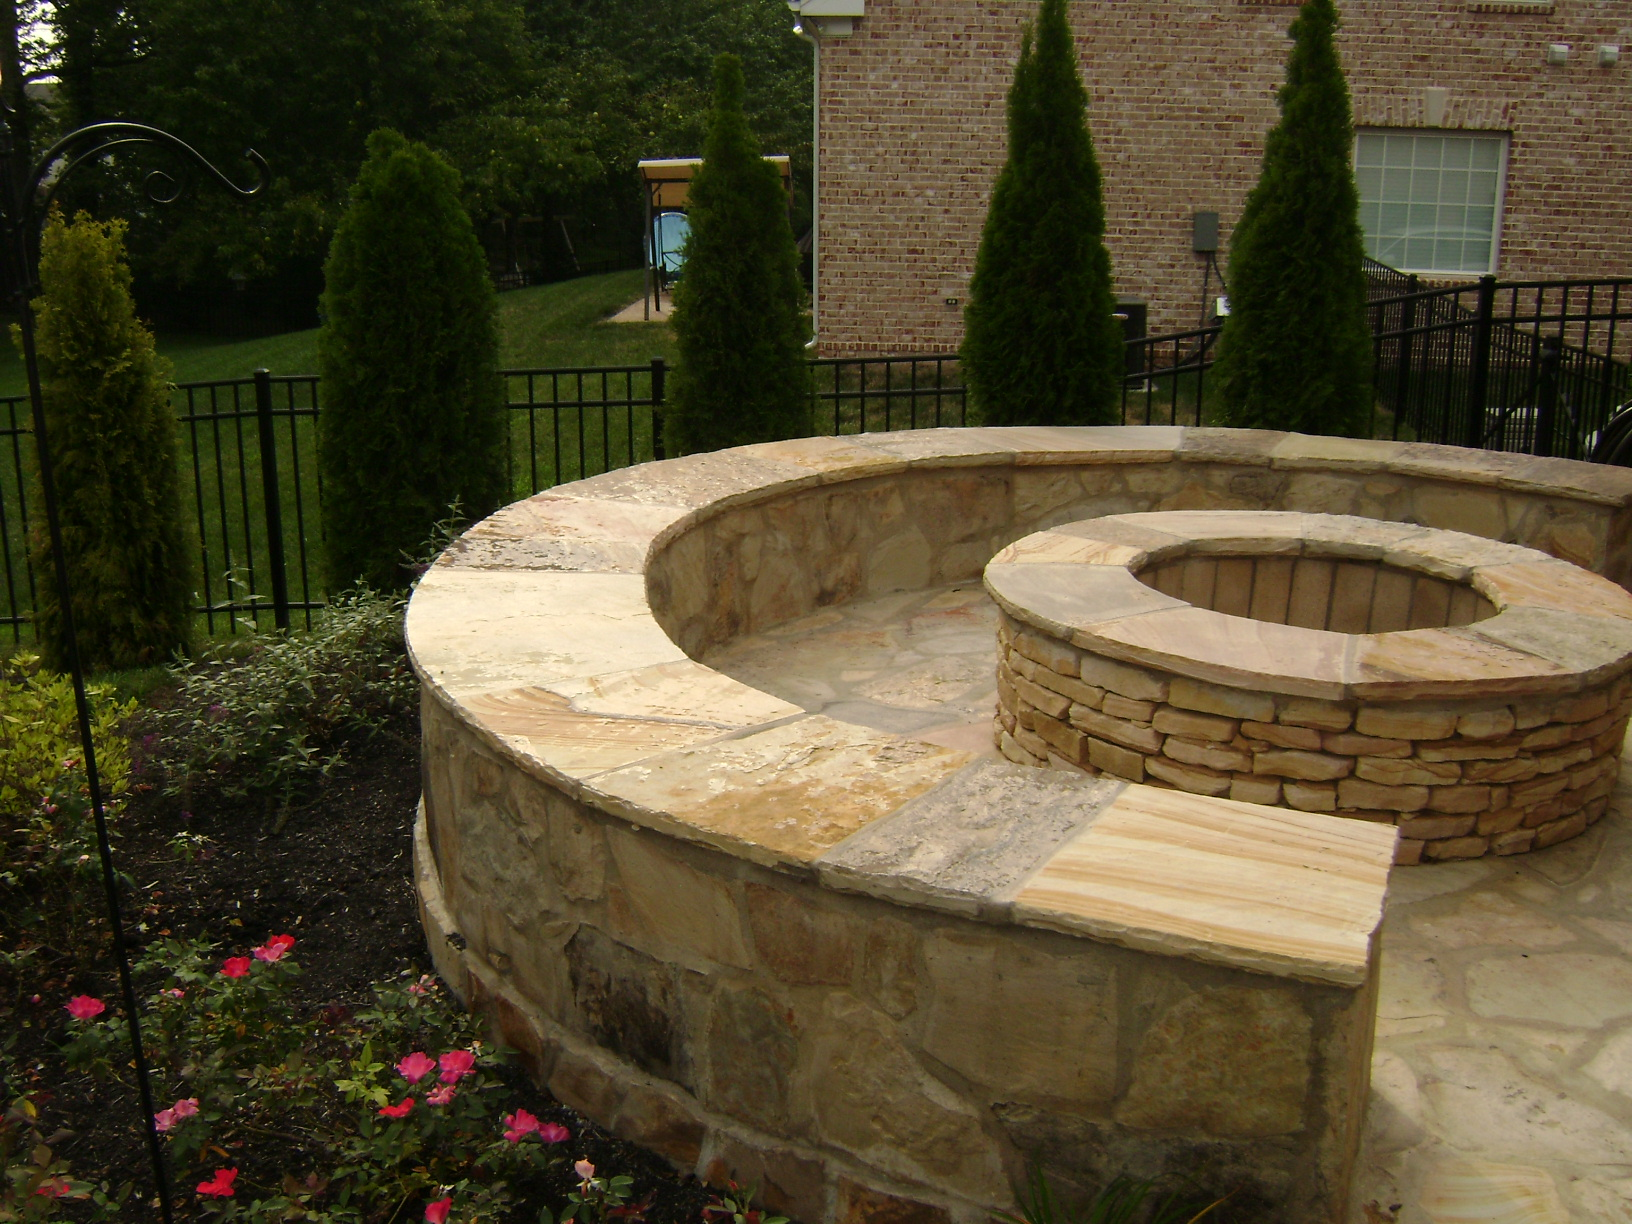 stone-fire-pit-and-stone-bench.jpg